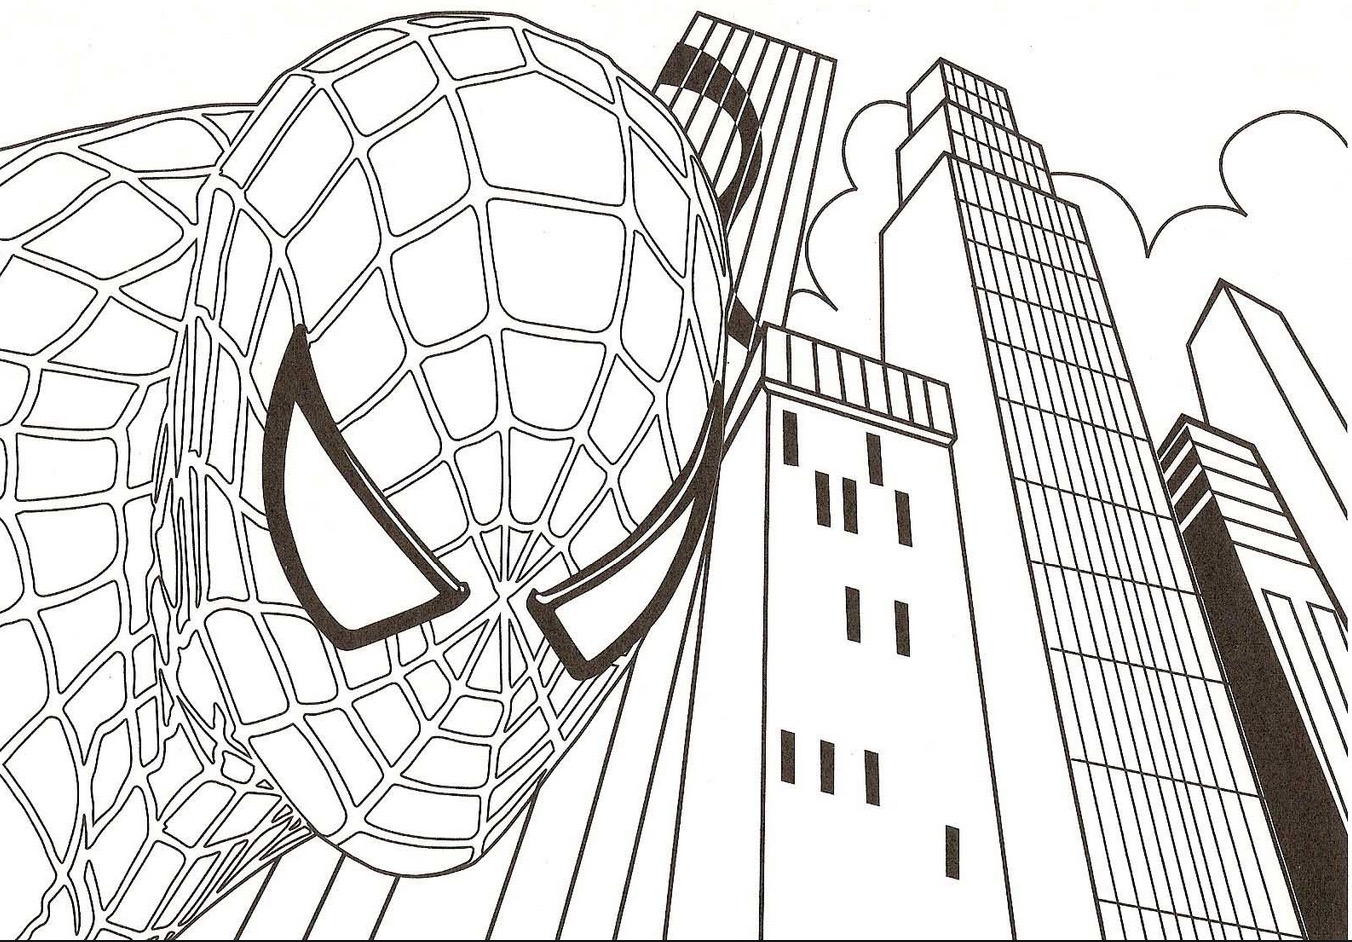 Spiderman Coloring Page Coloring Page Book For Kids